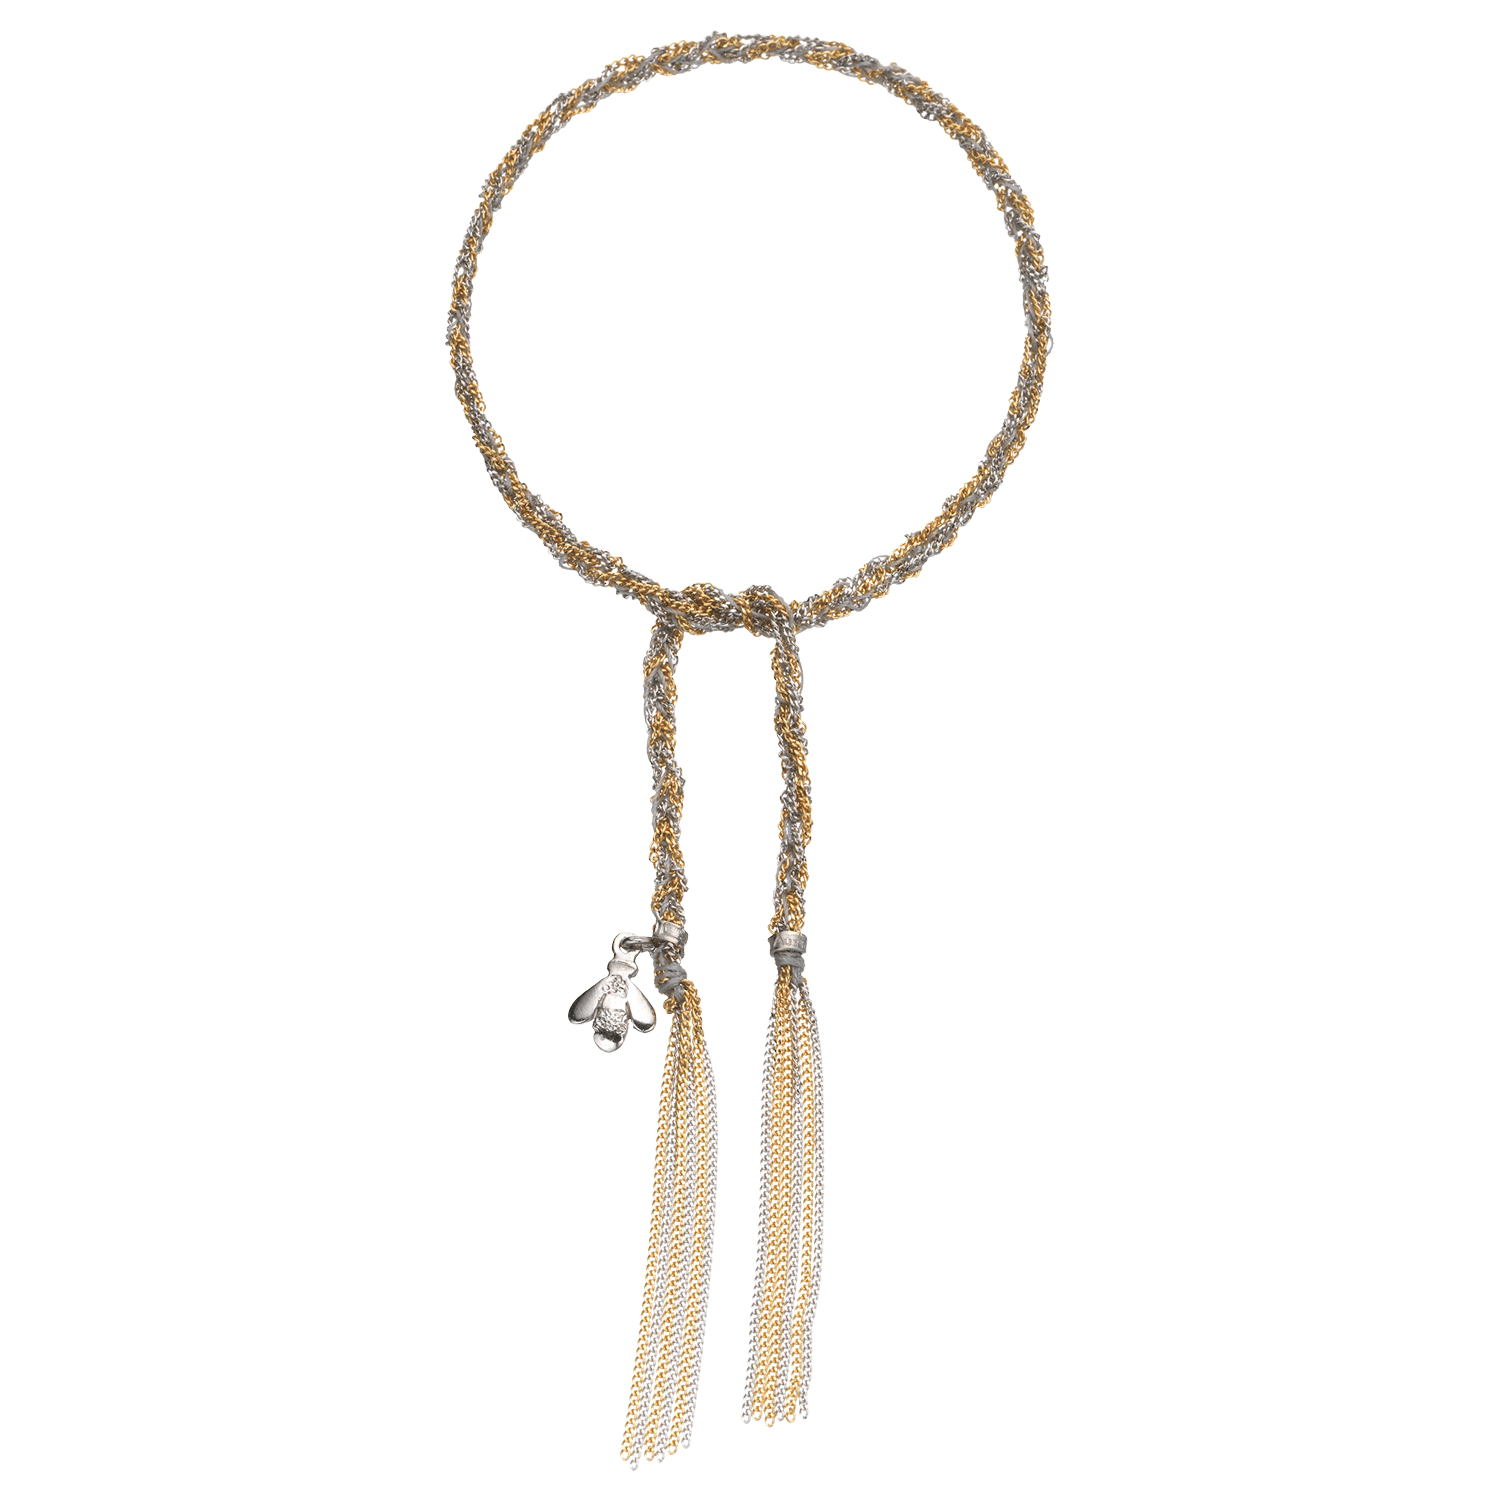 Carolina Bucci Lucky Bracelet with Virtue Charm